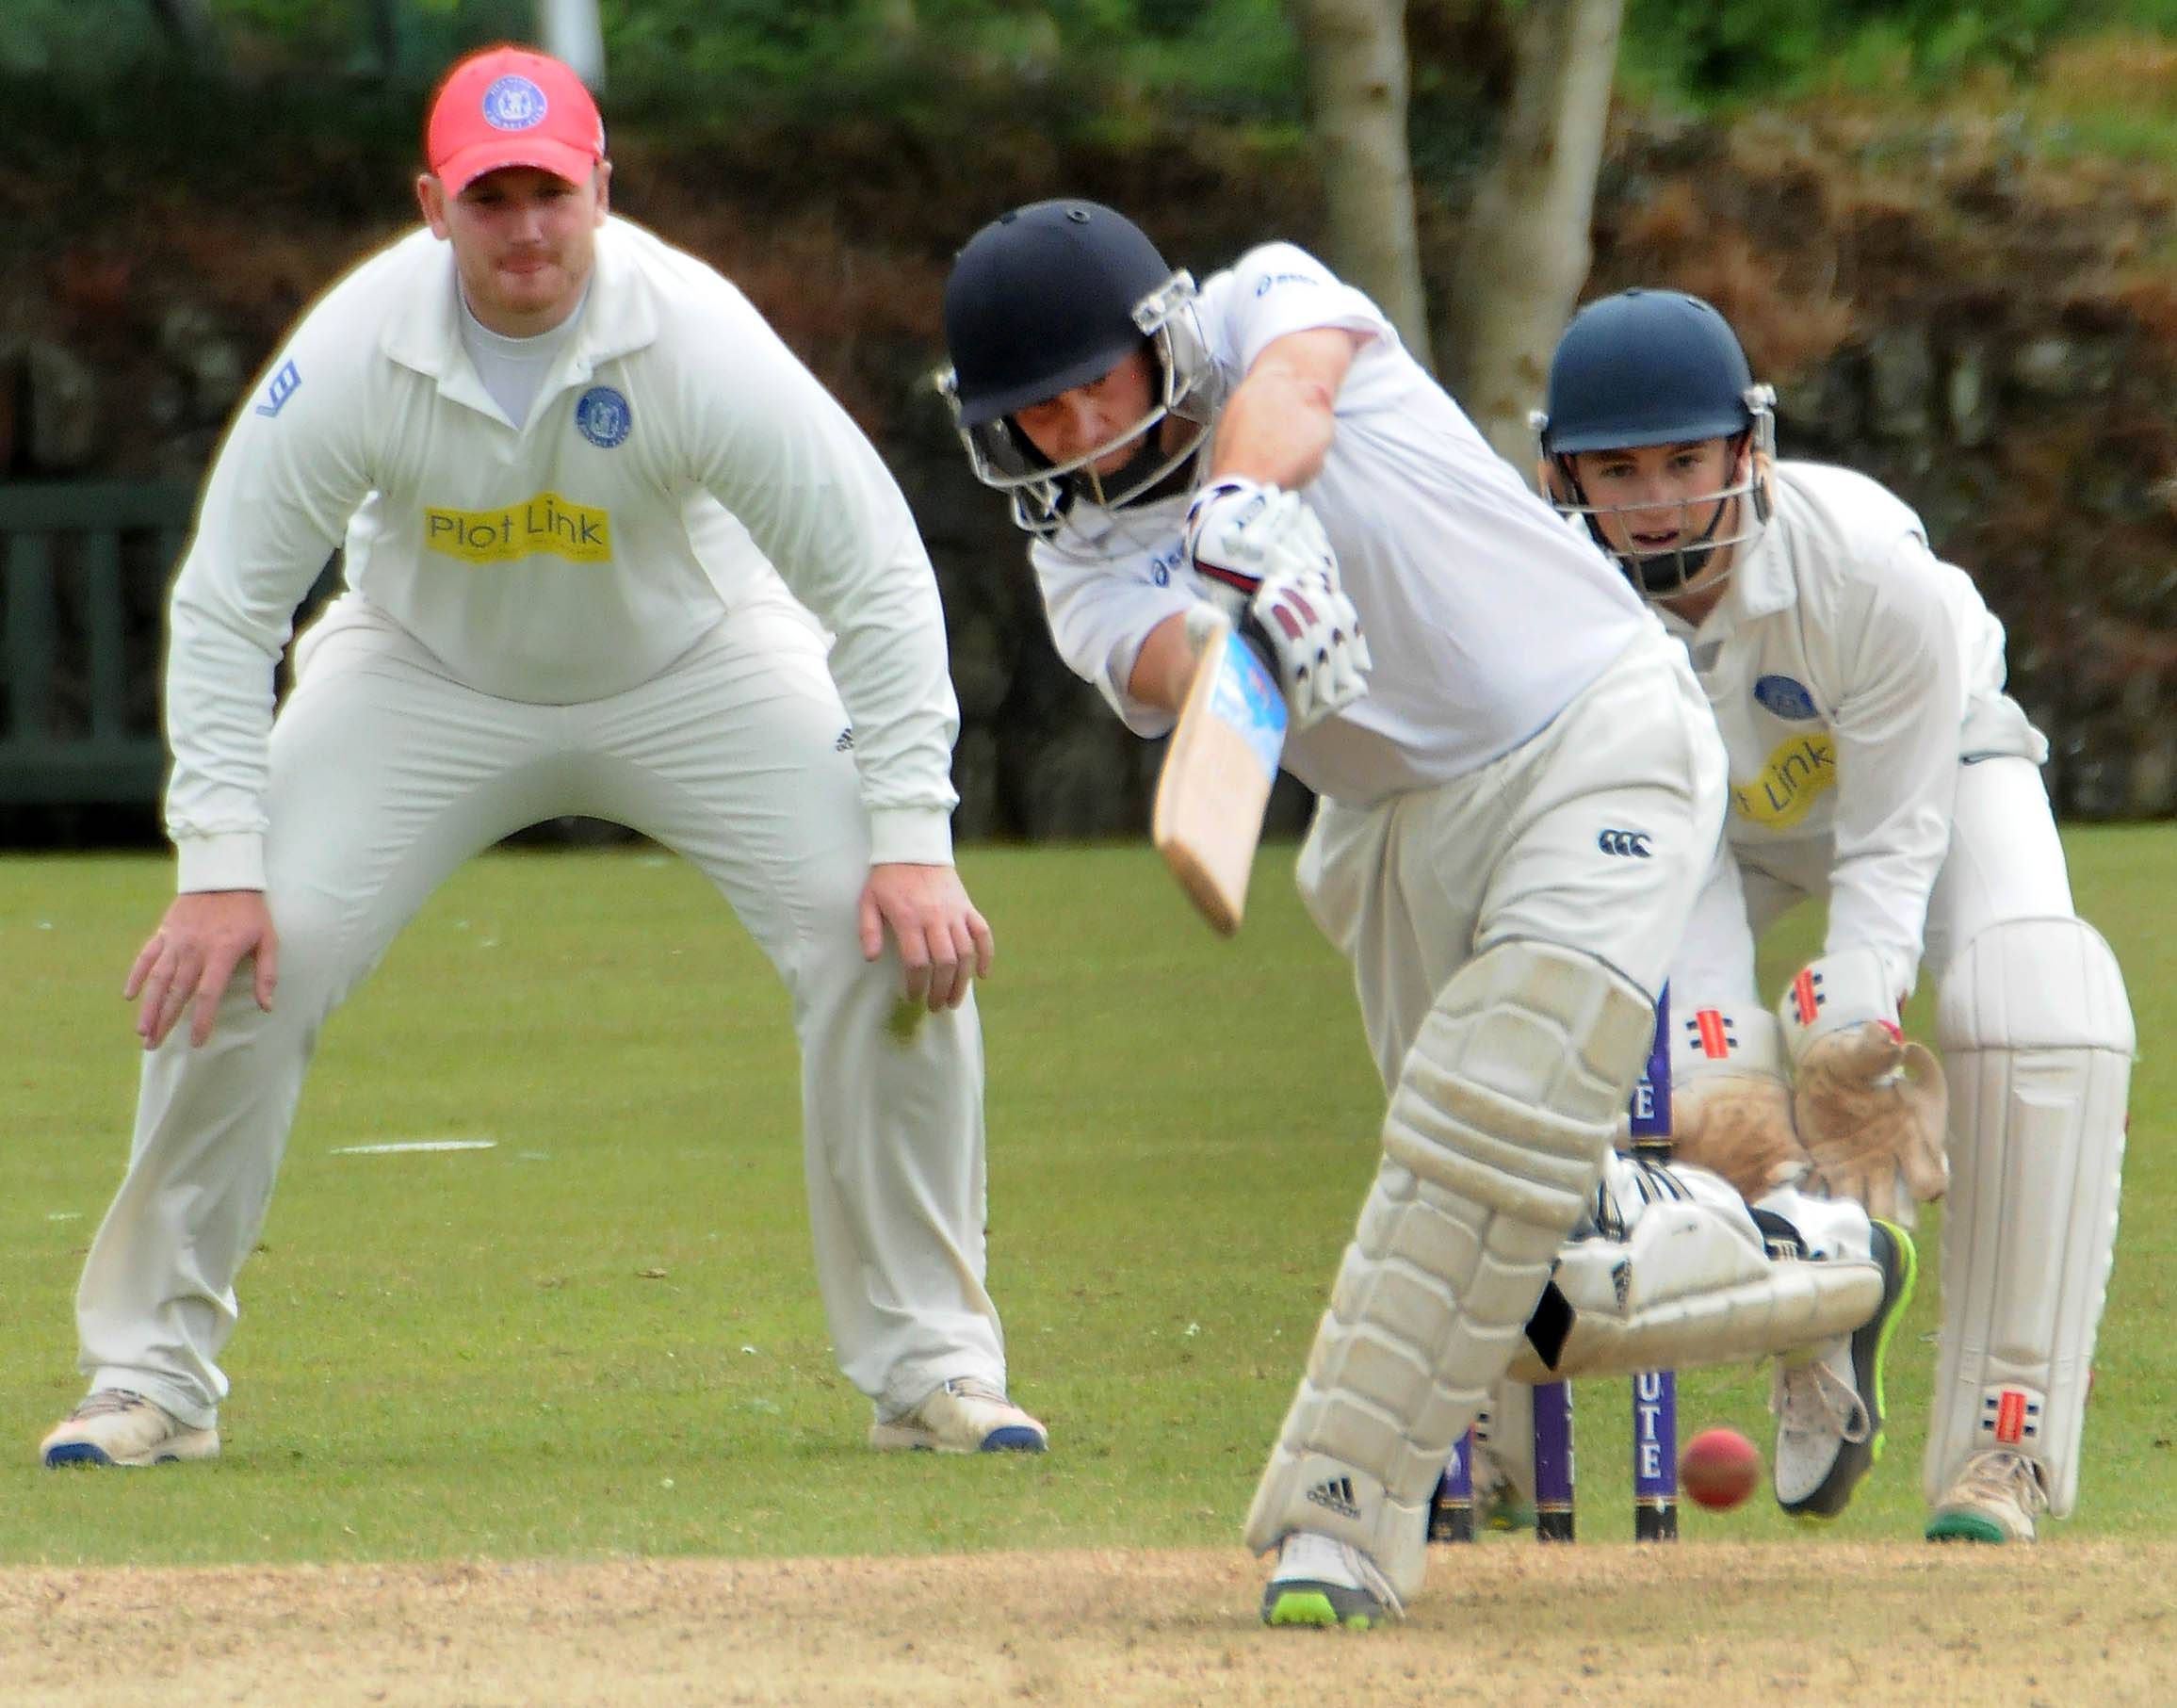 Helston wicket keeper Karl Leathley (right) and slip Steve Wiseman (left) field Beacon's Ben James (centre) during Helston's seven-wicket win on Saturday. Picture by Colin Higgs